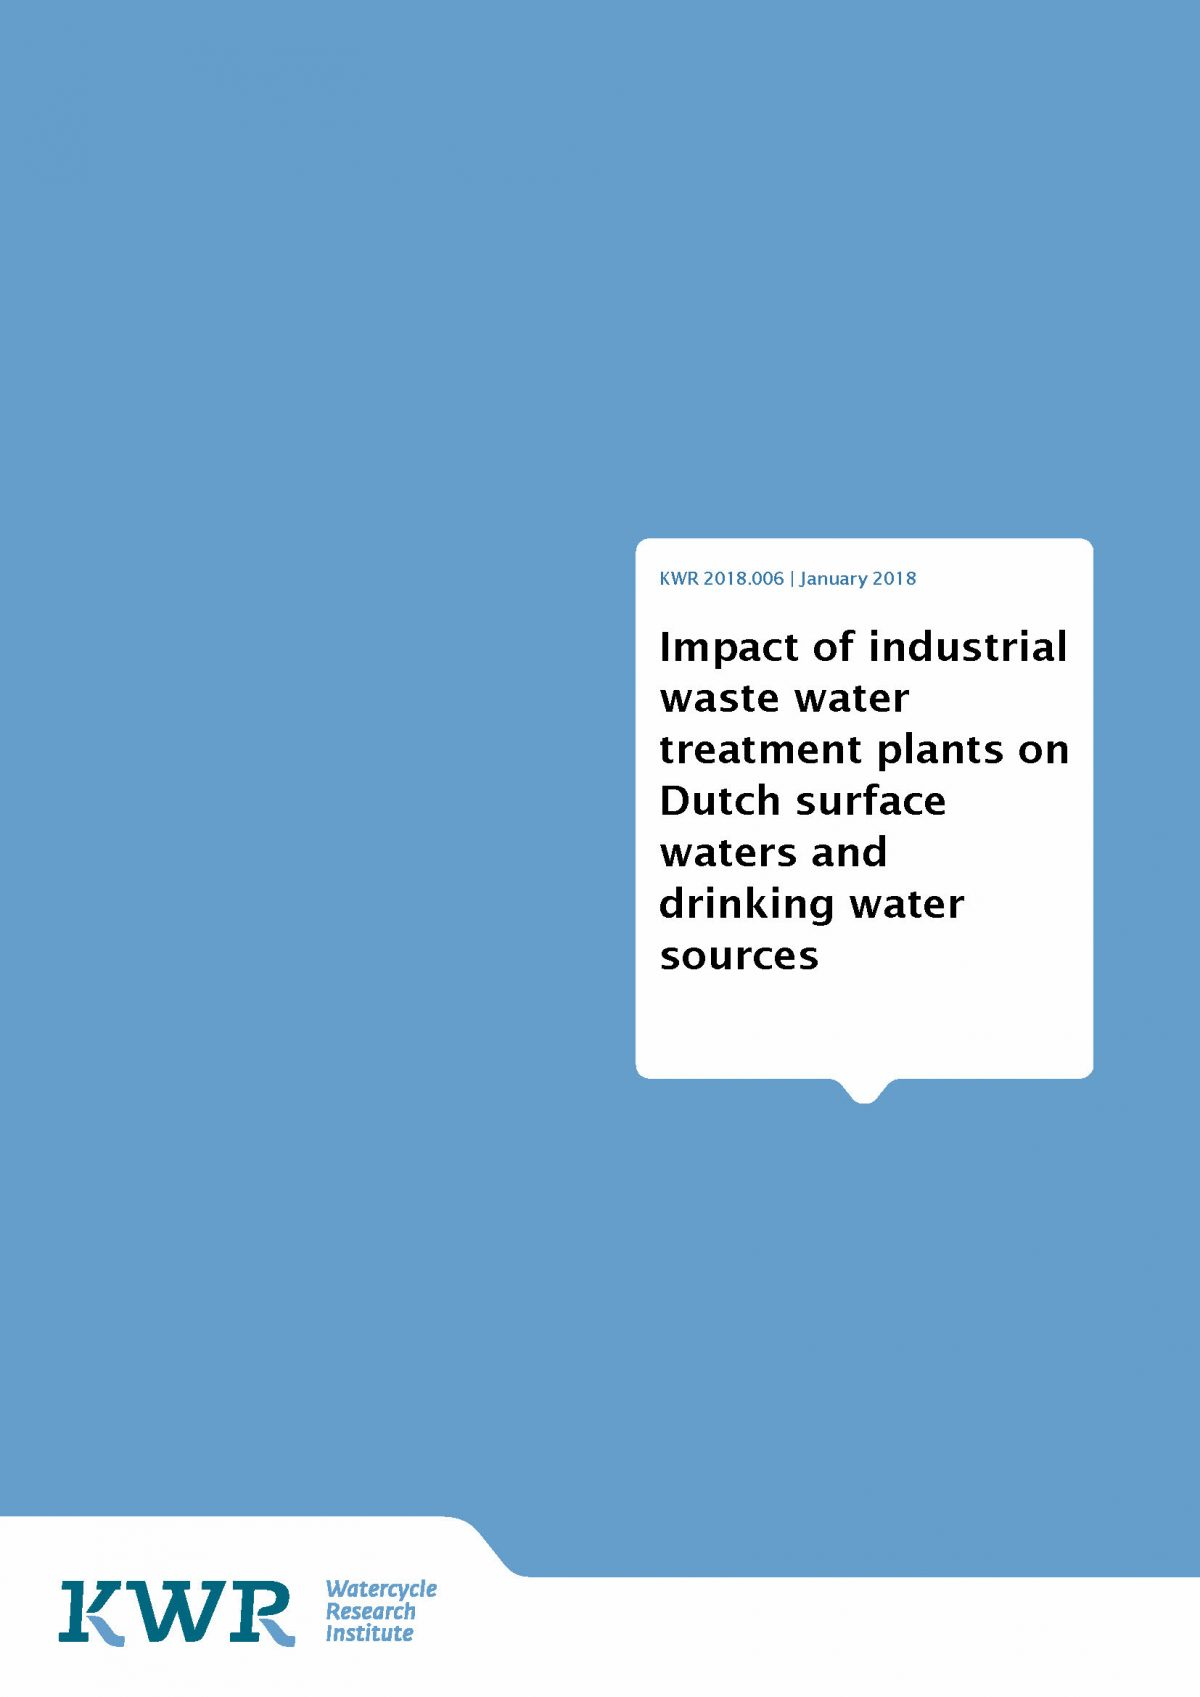 Impact of industrial waste water treatment plants on Dutch surface waters and drinking water